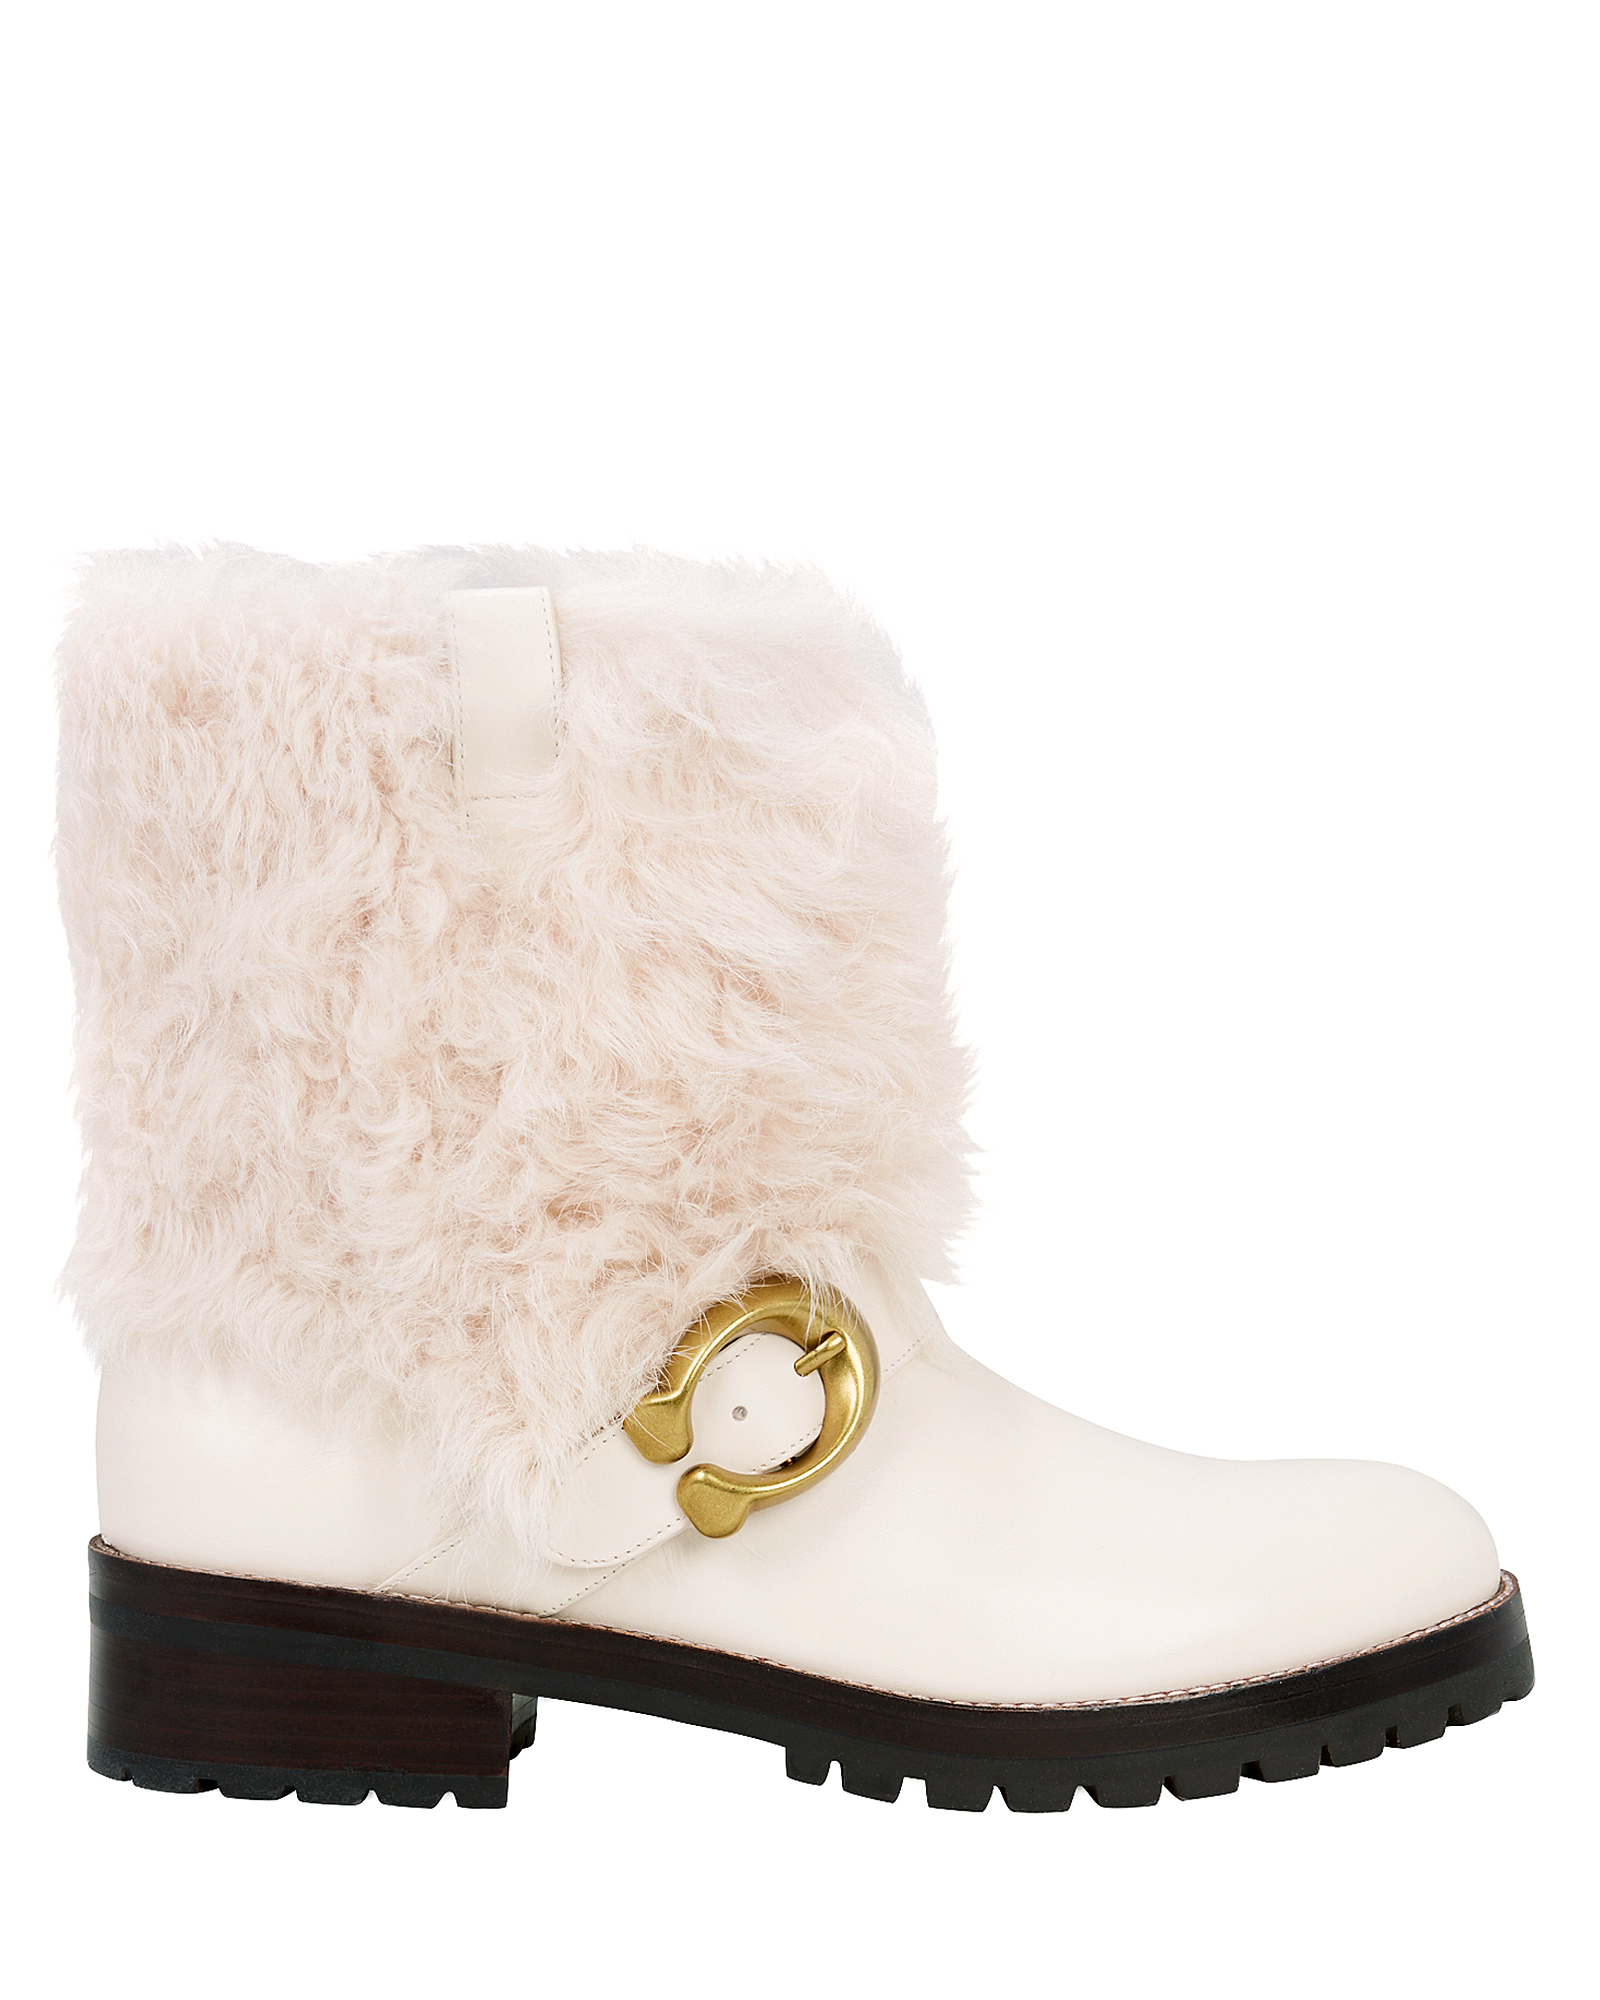 Leighton Shearling-Cuff Leather Buckle Boots in White